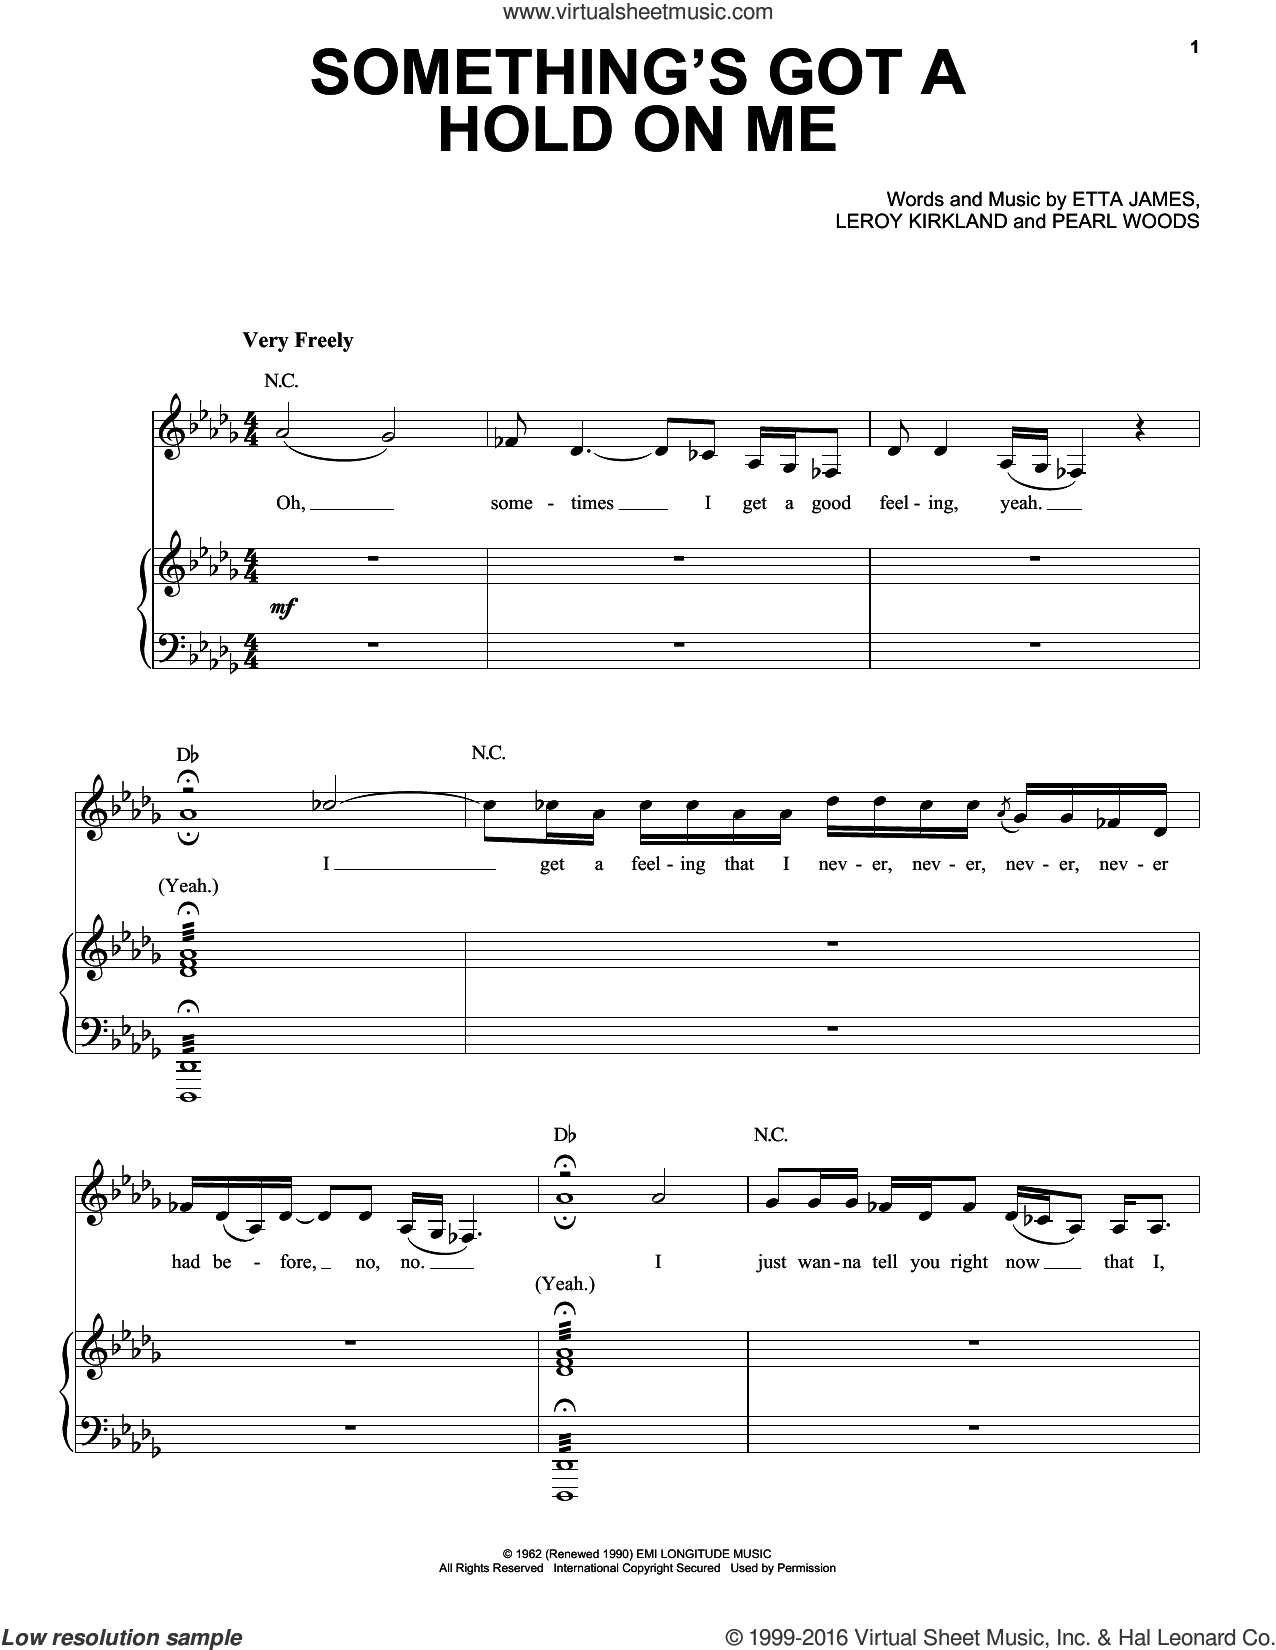 Something's Got A Hold On Me sheet music for voice and piano by Etta James, Leroy Kirkland and Pearl Woods, intermediate skill level